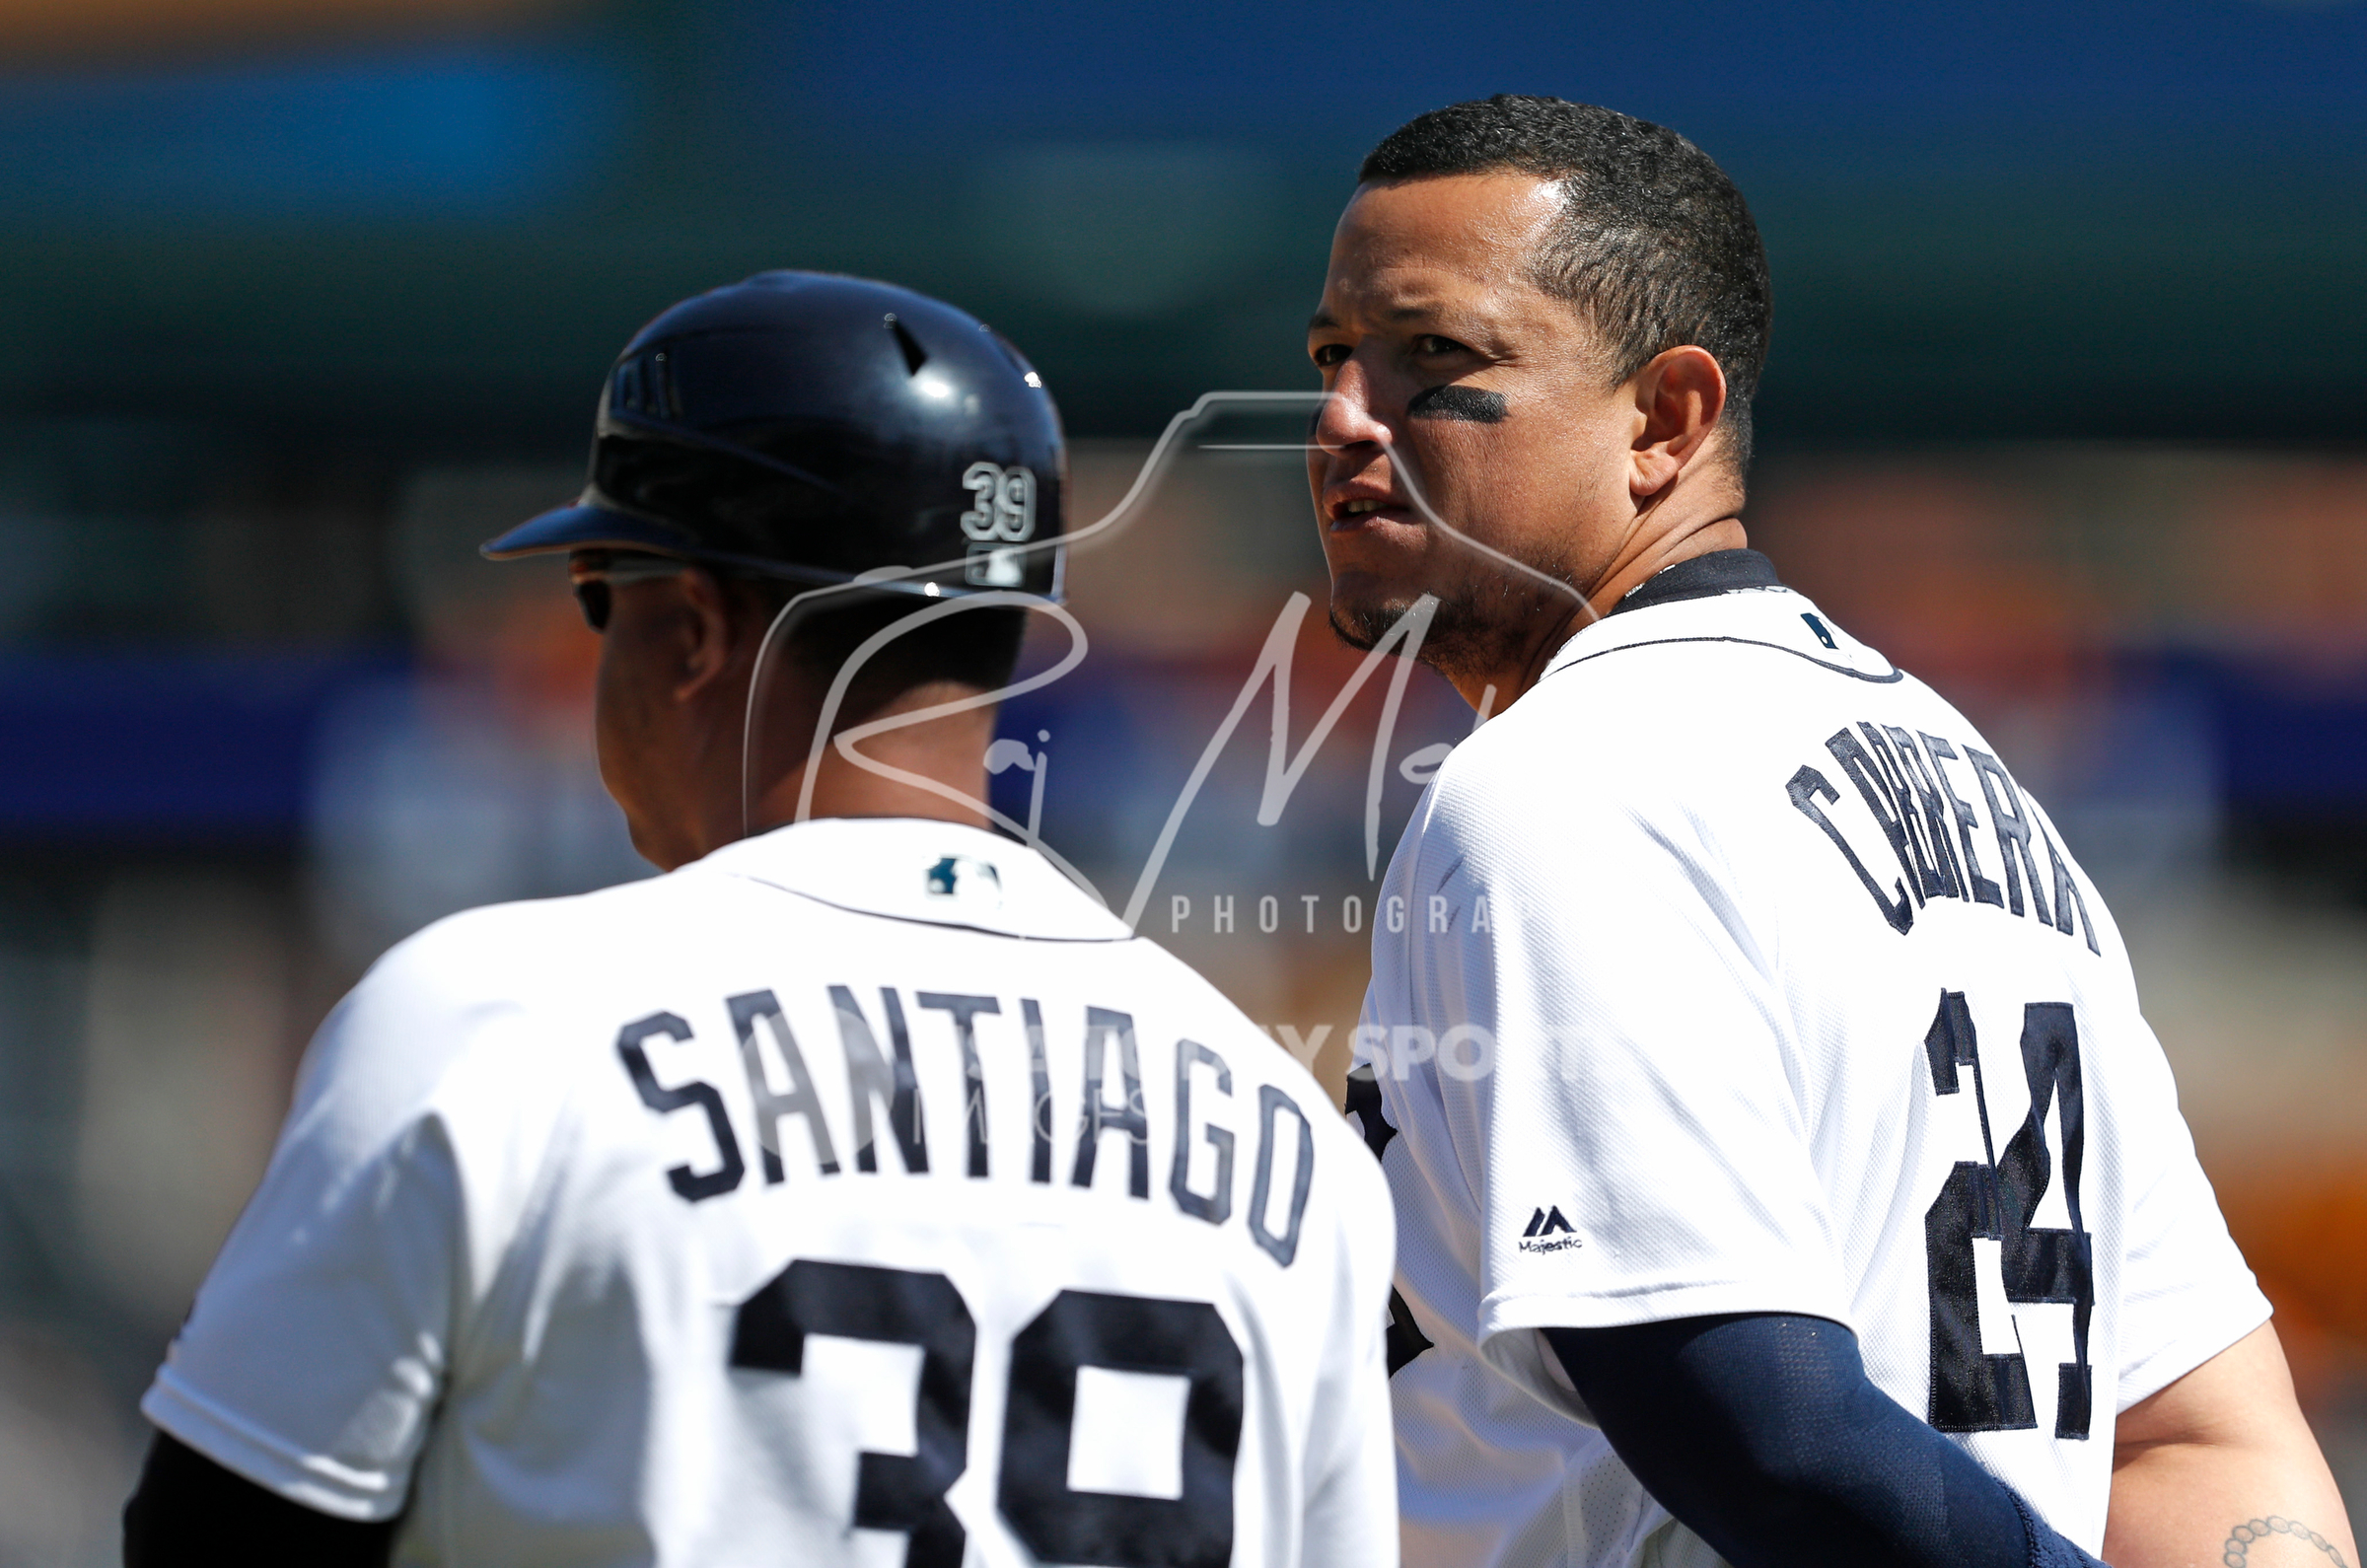 Apr 22, 2018; Detroit, MI, USA; Detroit Tigers first baseman Miguel Cabrera (24) standing next to first base coach Ramon Santiago (39) during the sixth inning against the Kansas City Royals at Comerica Park. Mandatory Credit: Raj Mehta-USA TODAY Sports